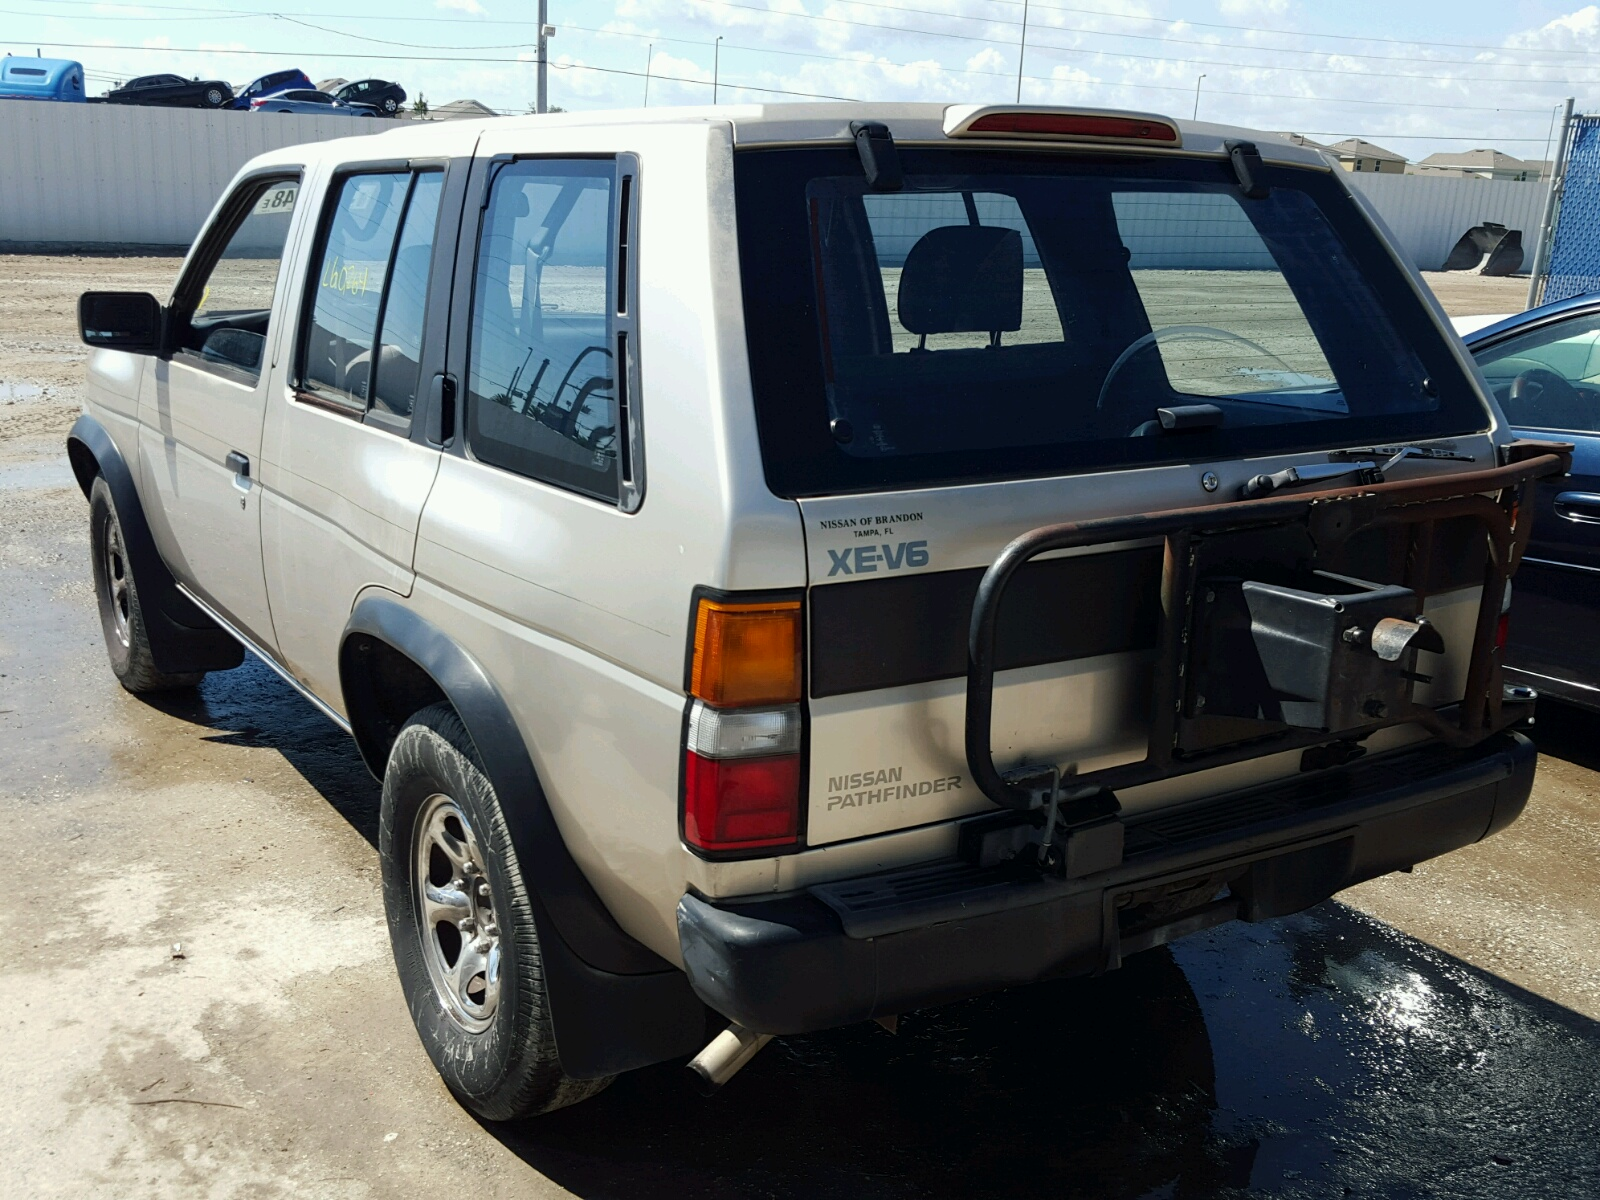 1995 Nissan Pathfinder For Sale At Copart Riverview FL Lot